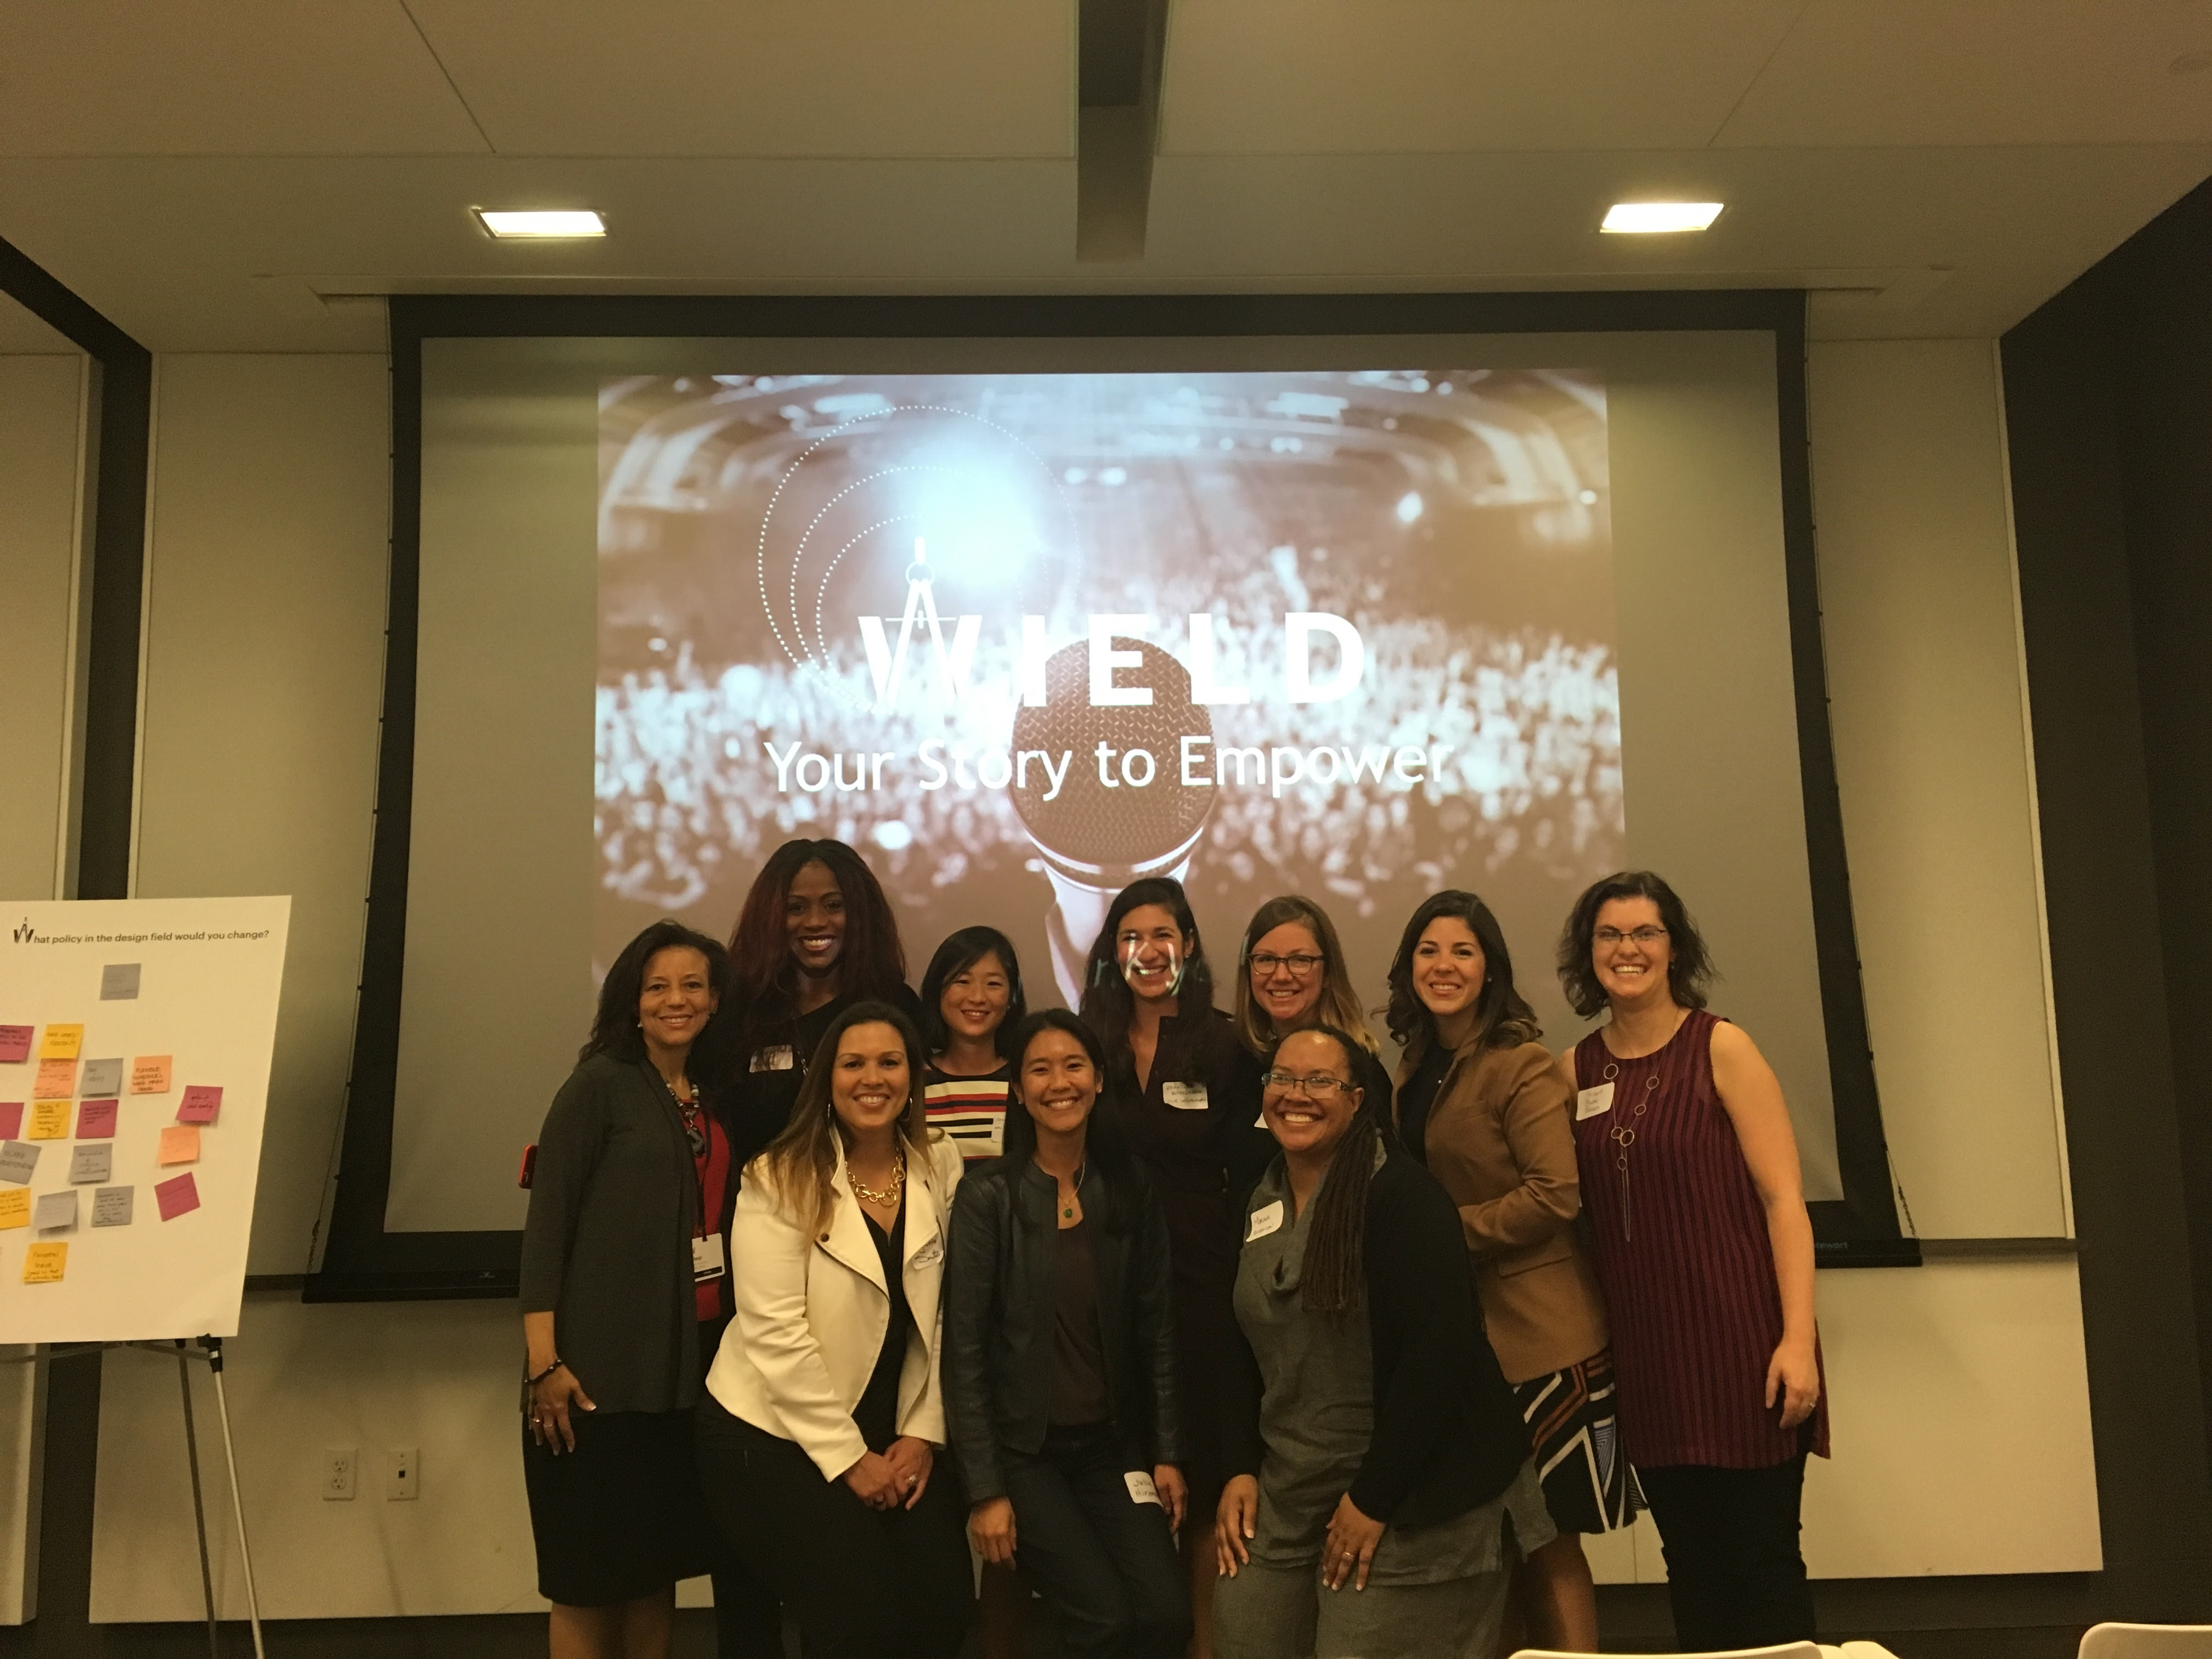 Women Inspiring Emerging Leaders in Design: Key Lessons from the Conference